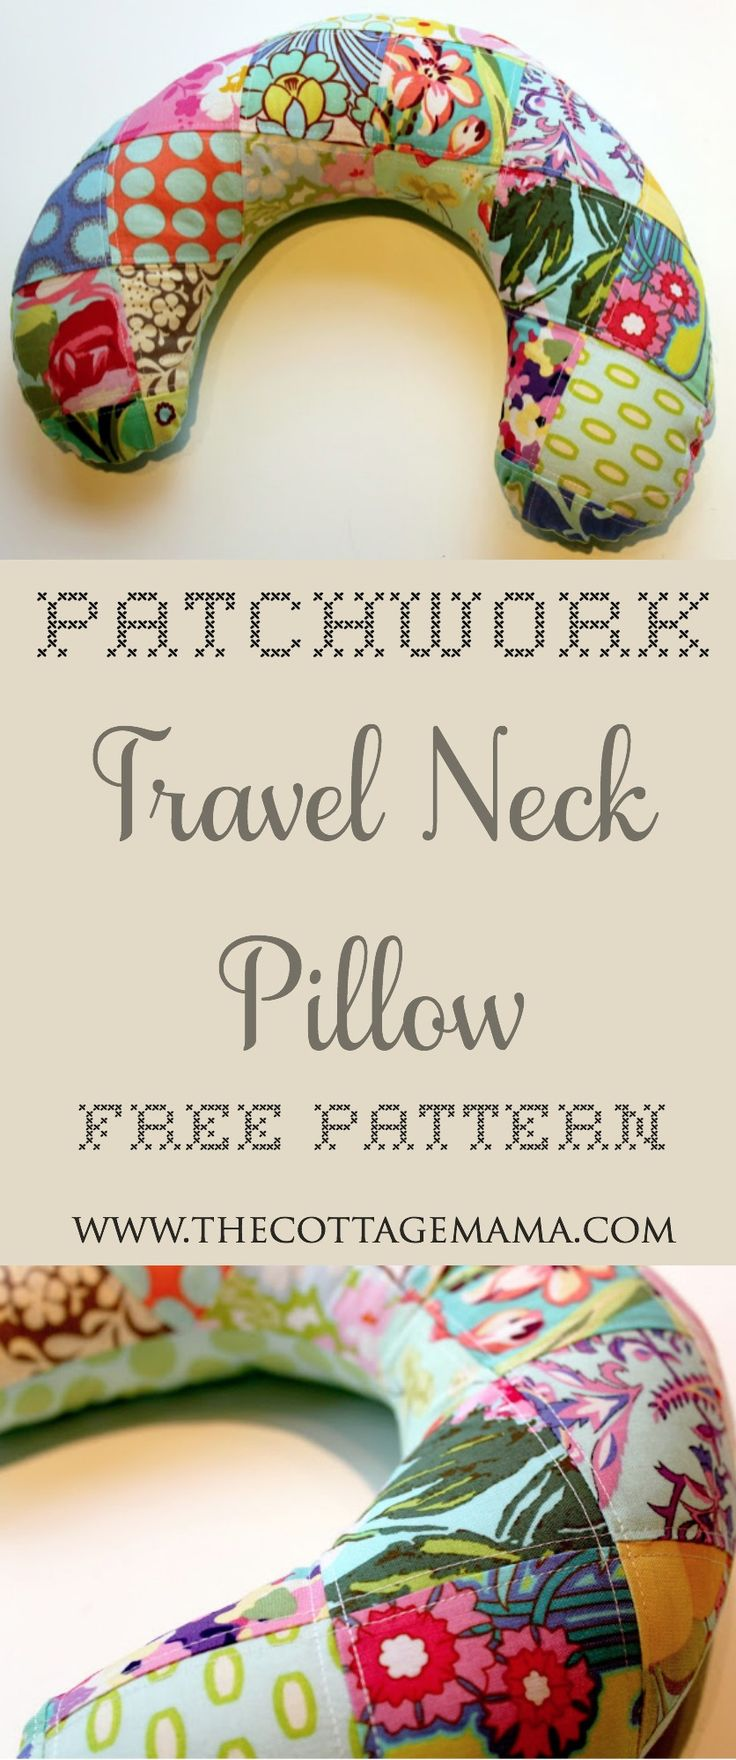 Patchwork Travel Neck Pillow FREE Pattern from The Cottage Mama. .thecottagemama.com · Pillowcase TutorialNeck PillowSewing ... & 457 best SEWING - PILLOWS PILLOWCASES images on Pinterest ... pillowsntoast.com